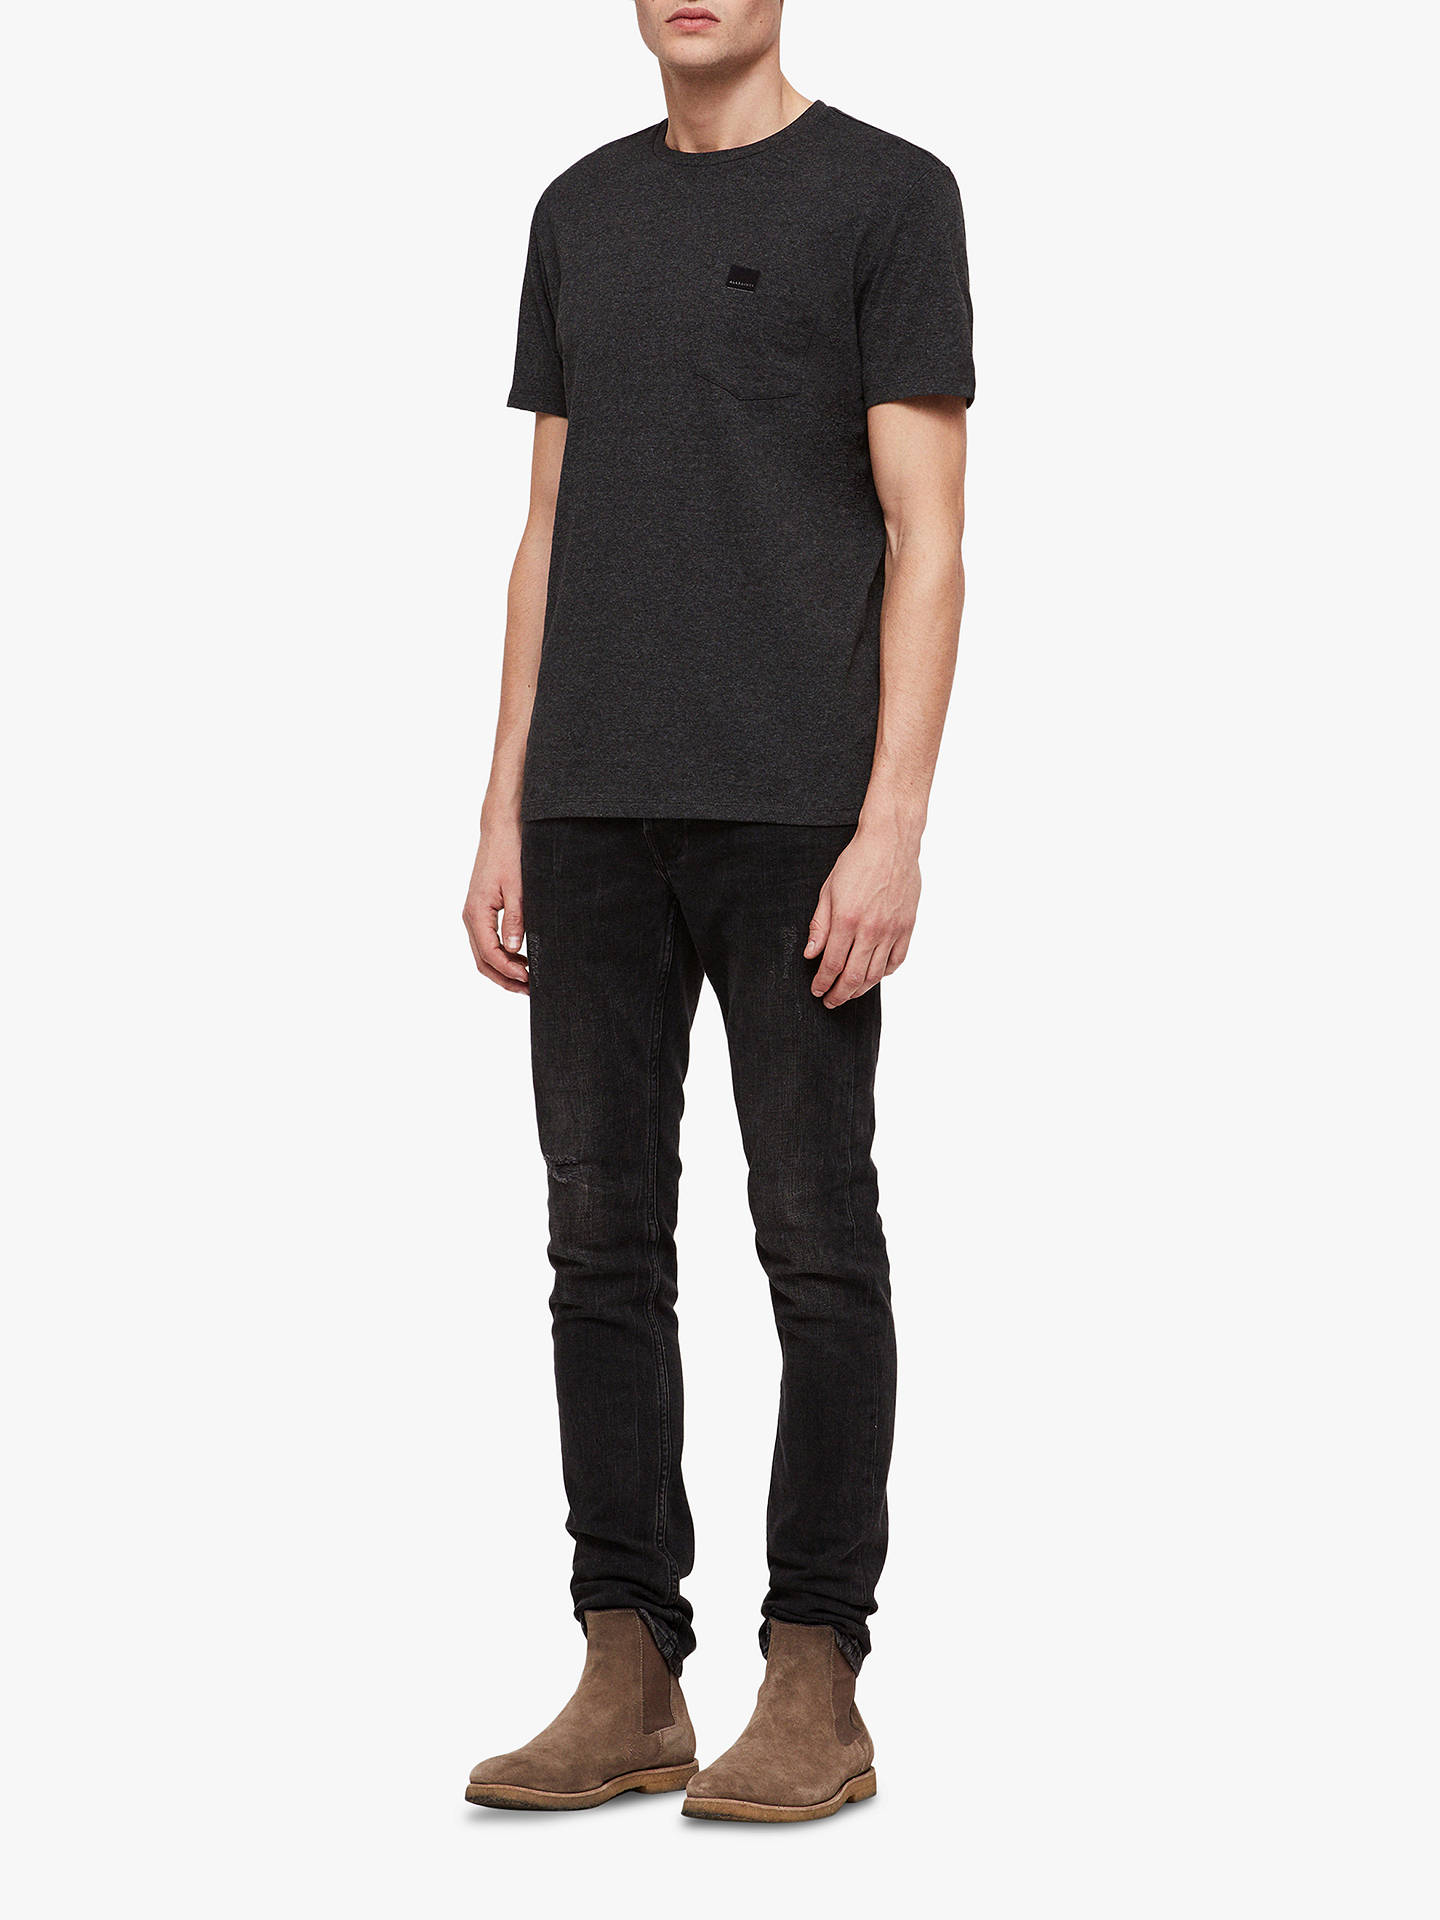 BuyAllSaints Heal Tonic Short Sleeve T-Shirt, Charcoal Marl, XS Online at johnlewis.com